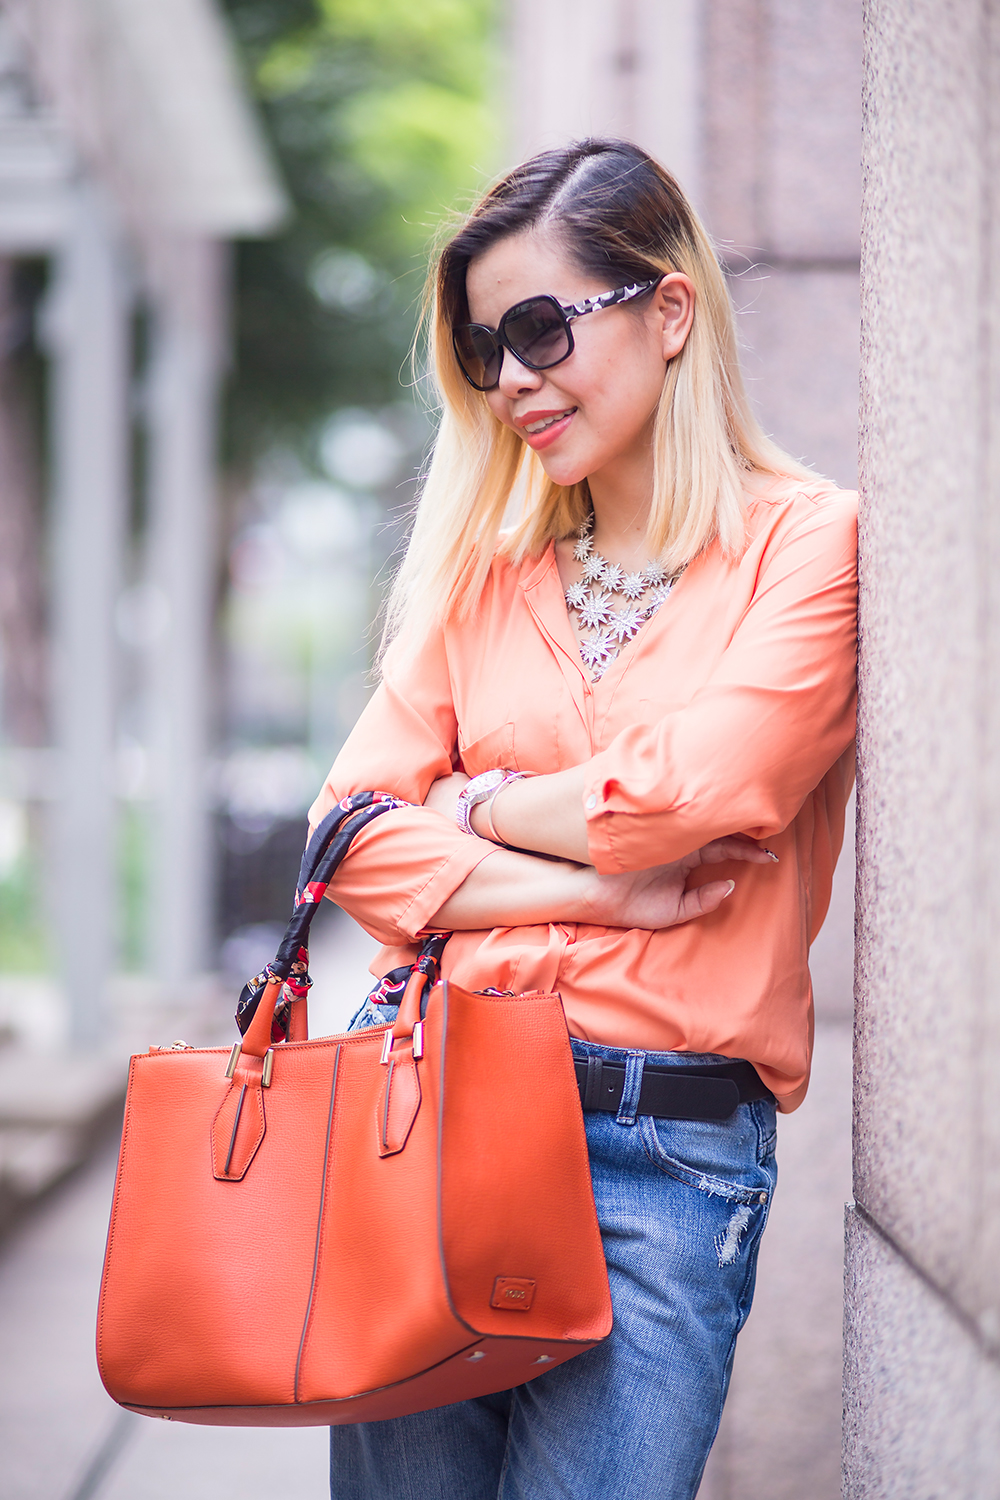 CrystalPhuong- Singapore Fashion Blog- Look chic in Boyfriend jeans